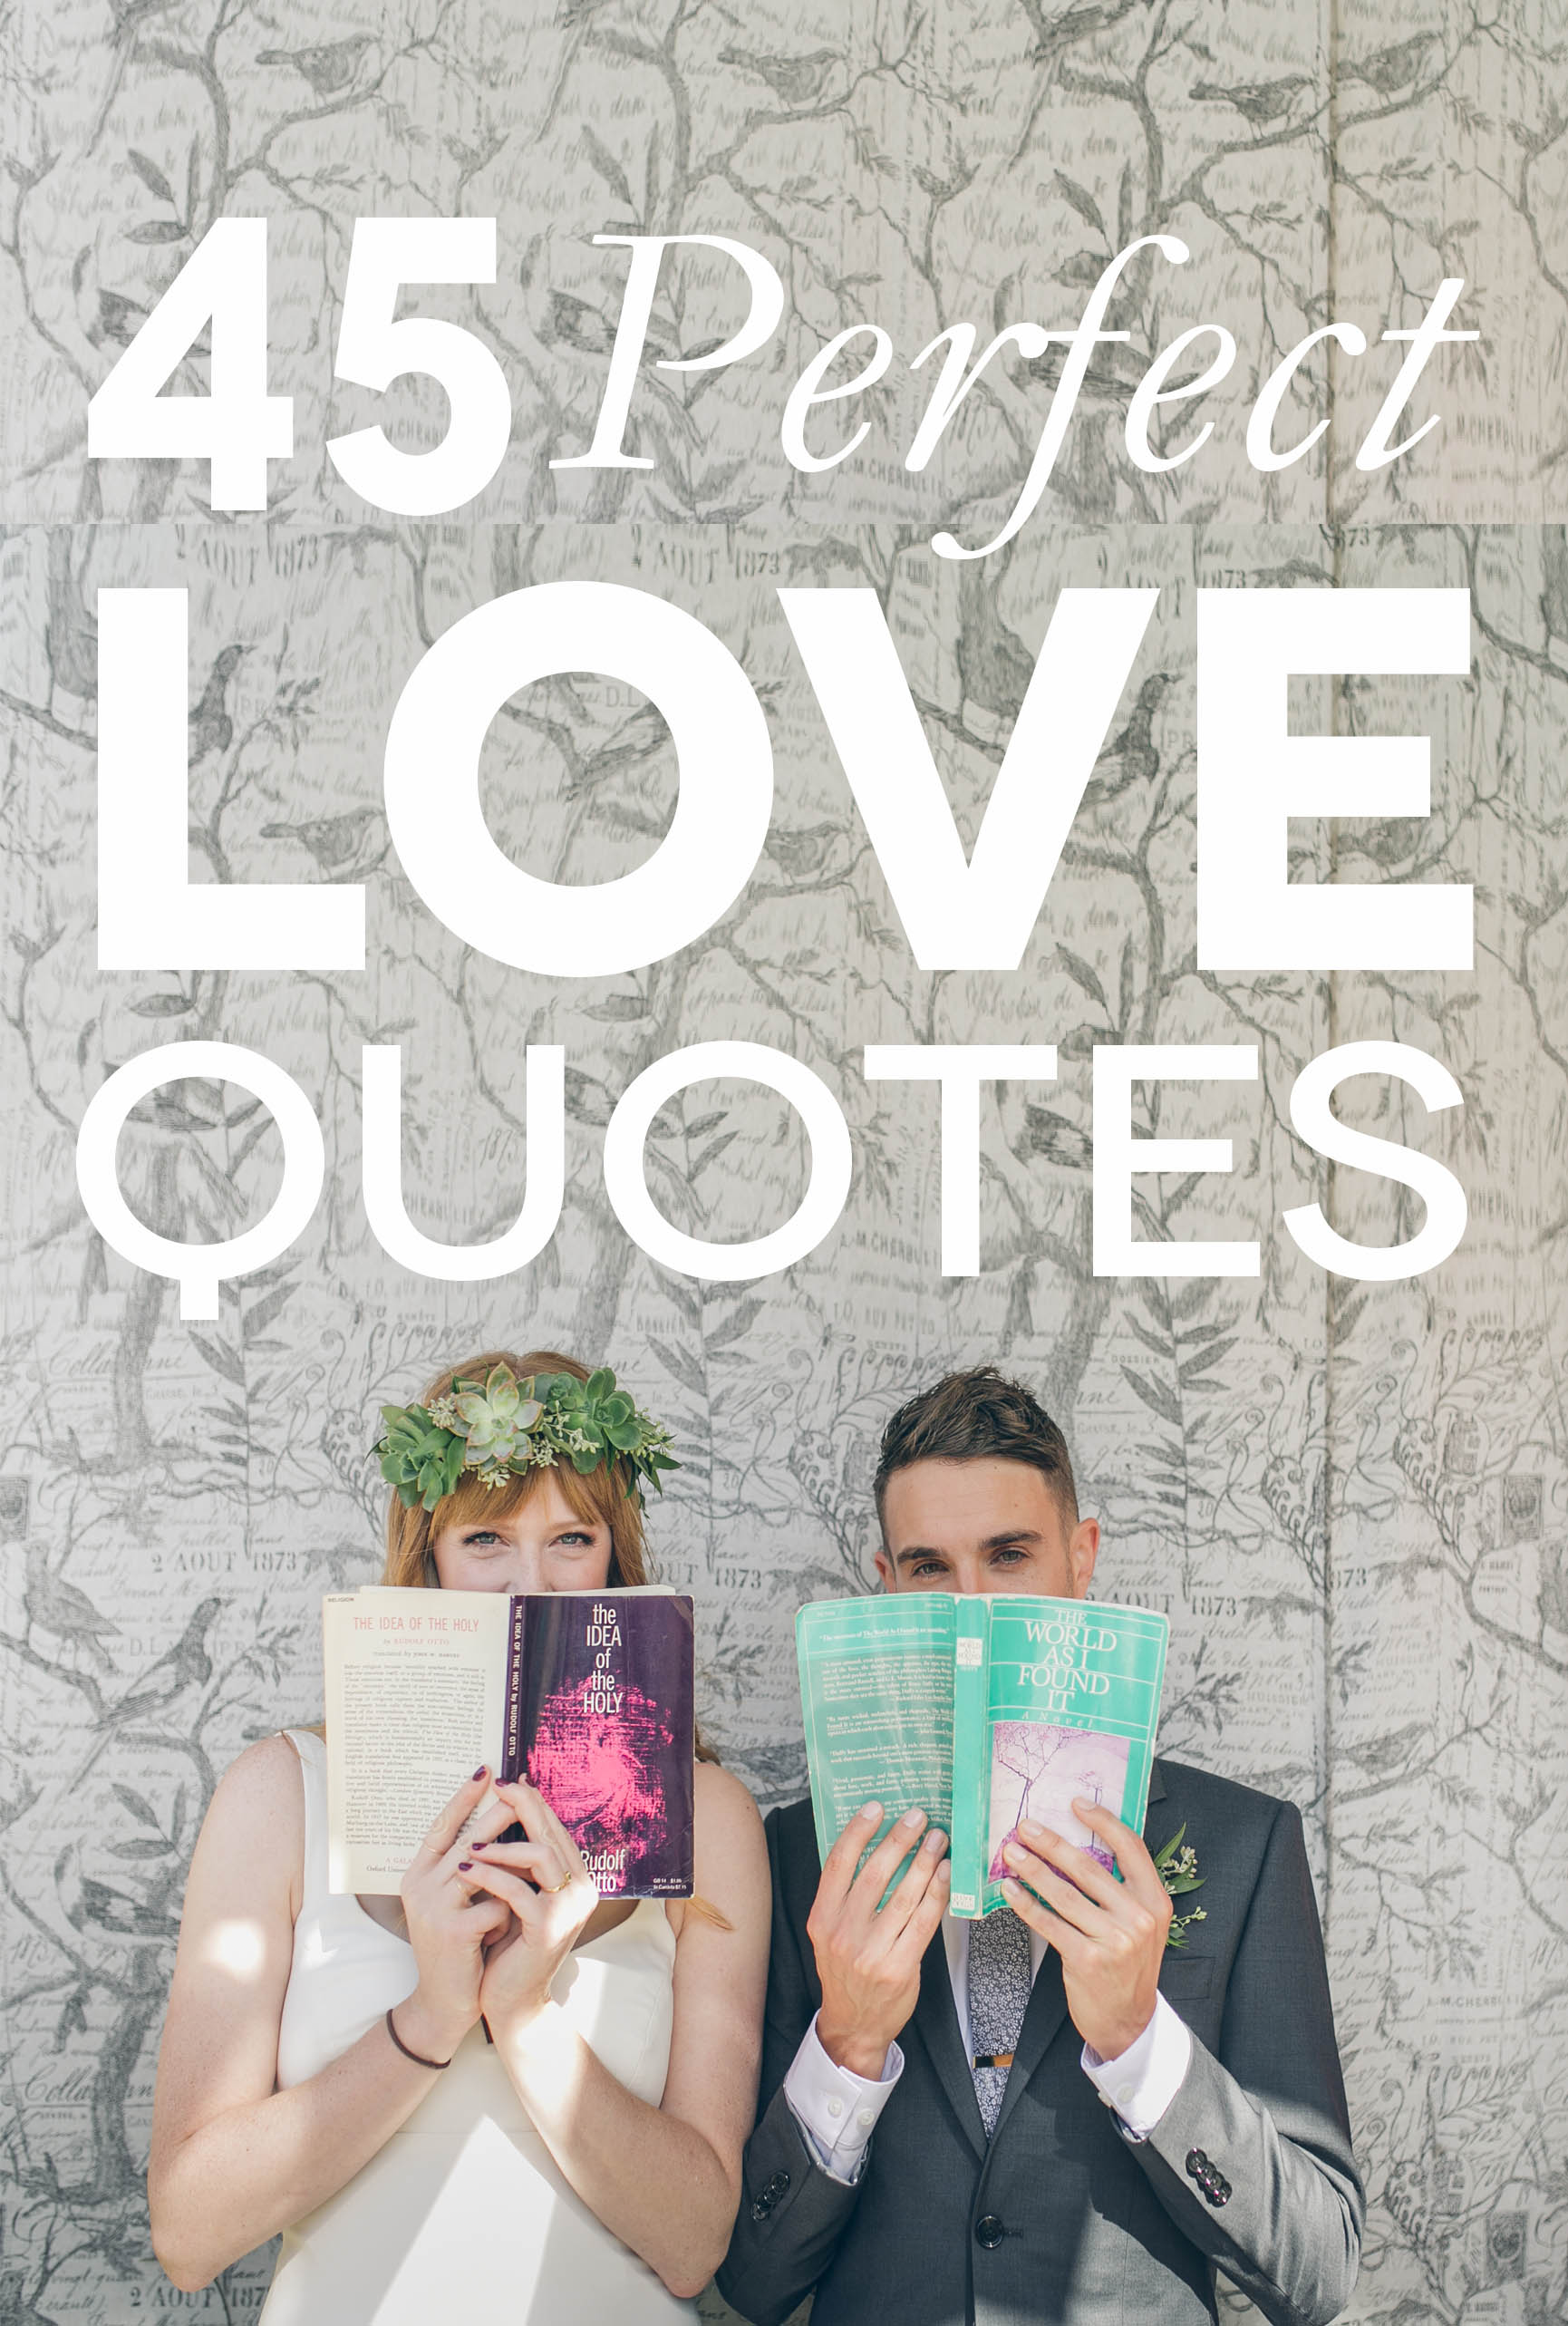 Wedding Quotes - A wedding couple stand against a wall and cover half their faces with books. 45 Perfect Love Quotes appears above their heads.